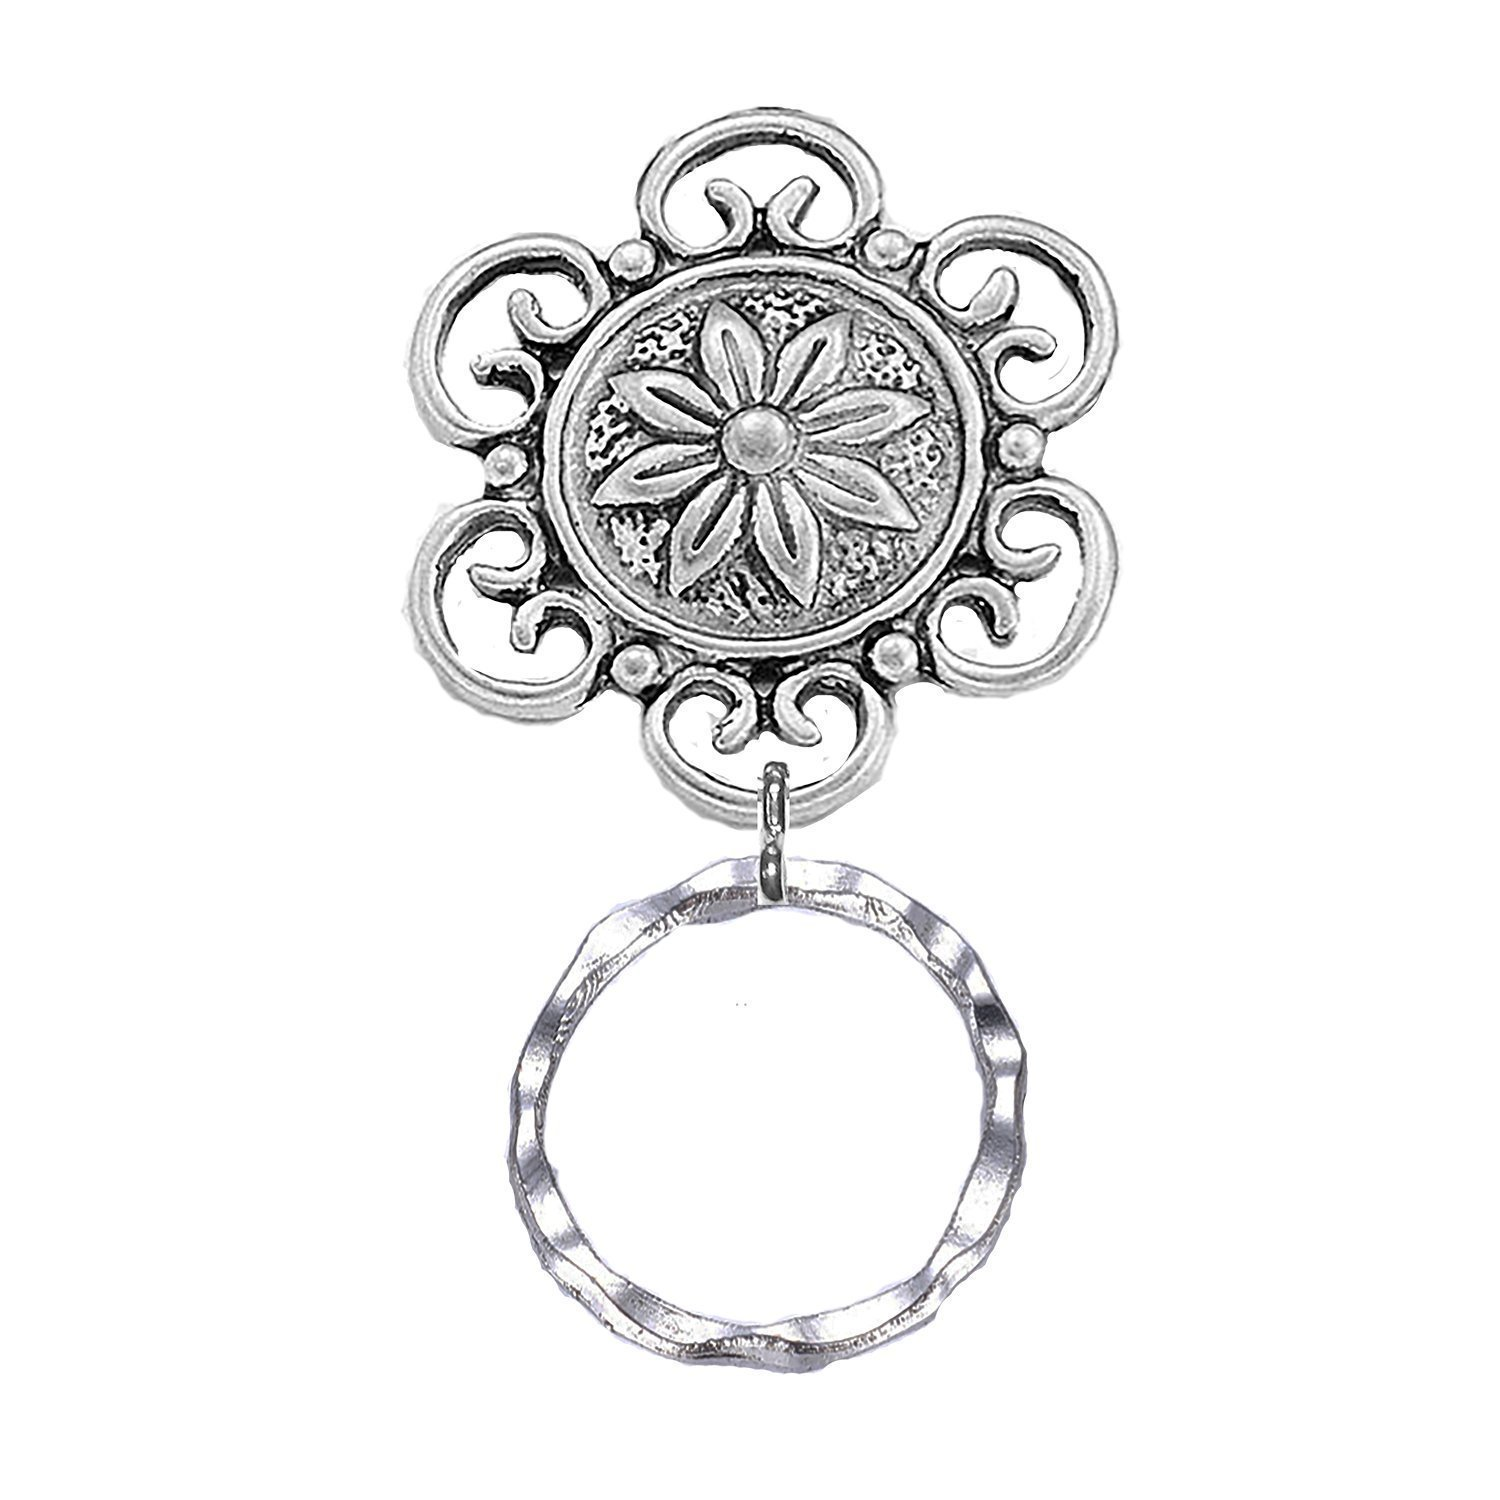 Eyeglass Holder Brooch in antique silver in a delightful flower pattern. Your choice of back type. FREE GIFT BOX! Goes well with any apparel.